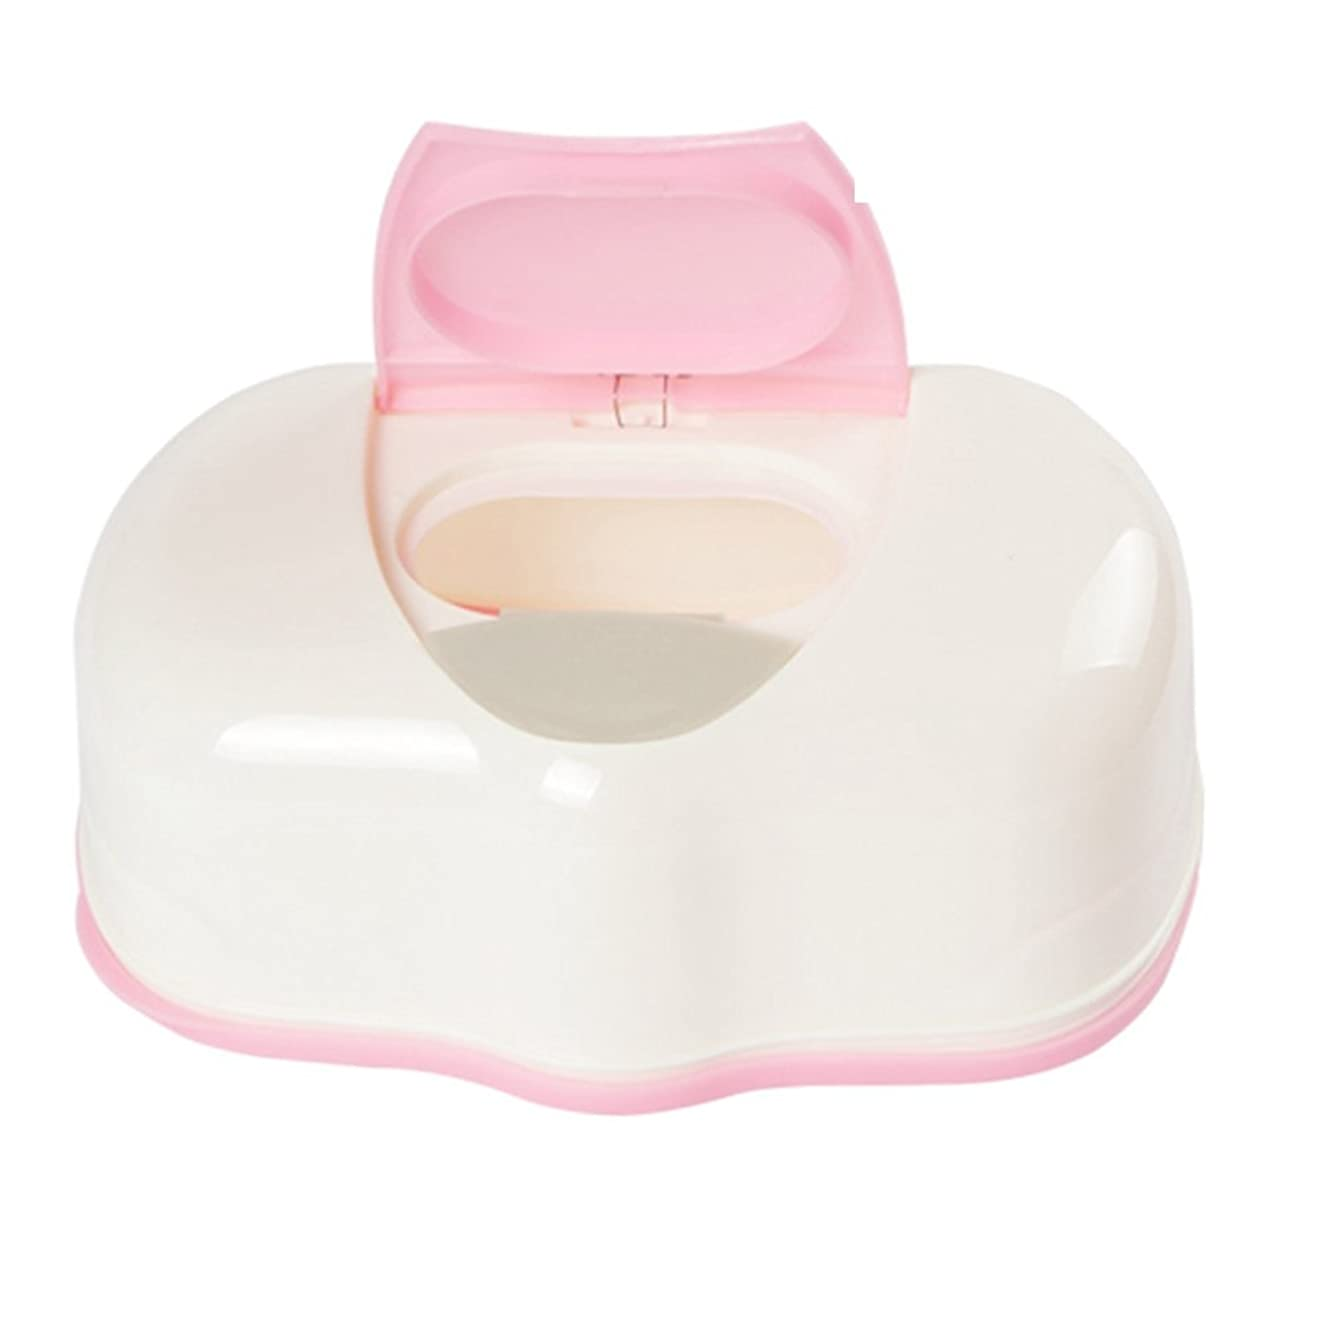 Baby Wipes Dispenser,Reusable Diaper Pouch Portable Travel Wet Wipes Holder Case Keeps Wipes Moist (Pink)